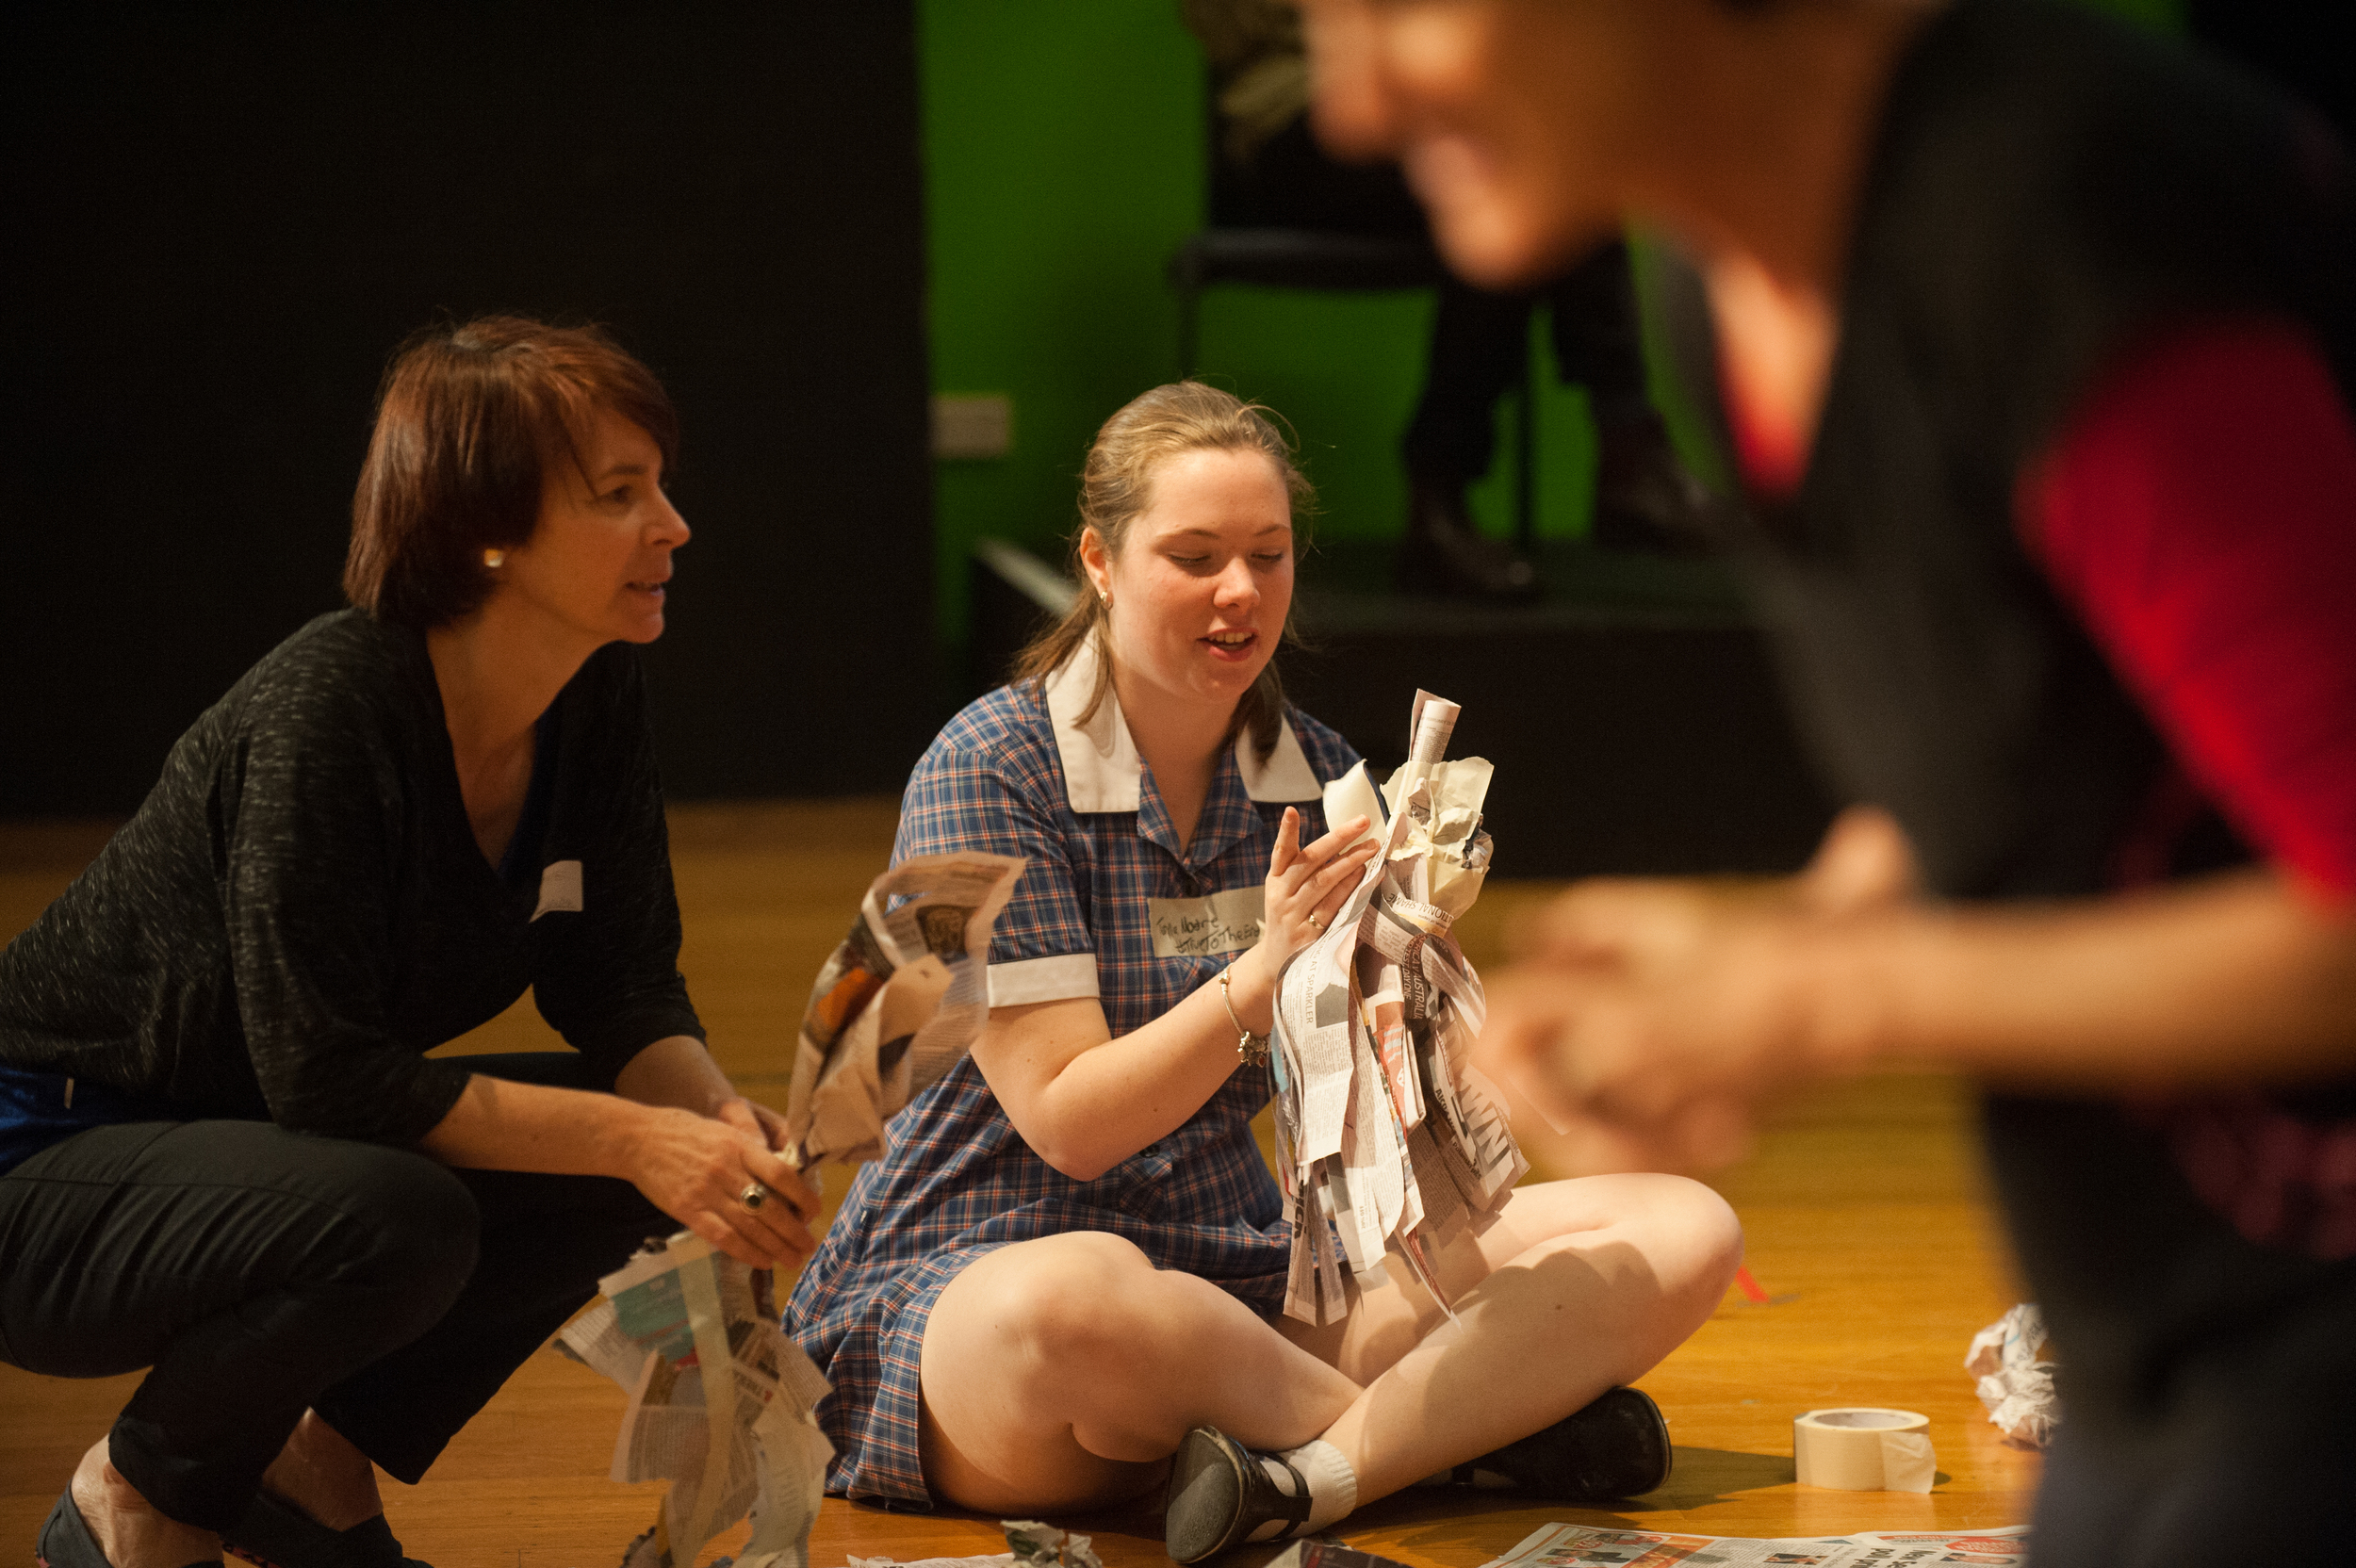 Working with Secondary Students with Polyglot Theatre 'Theatre Craft' workshop